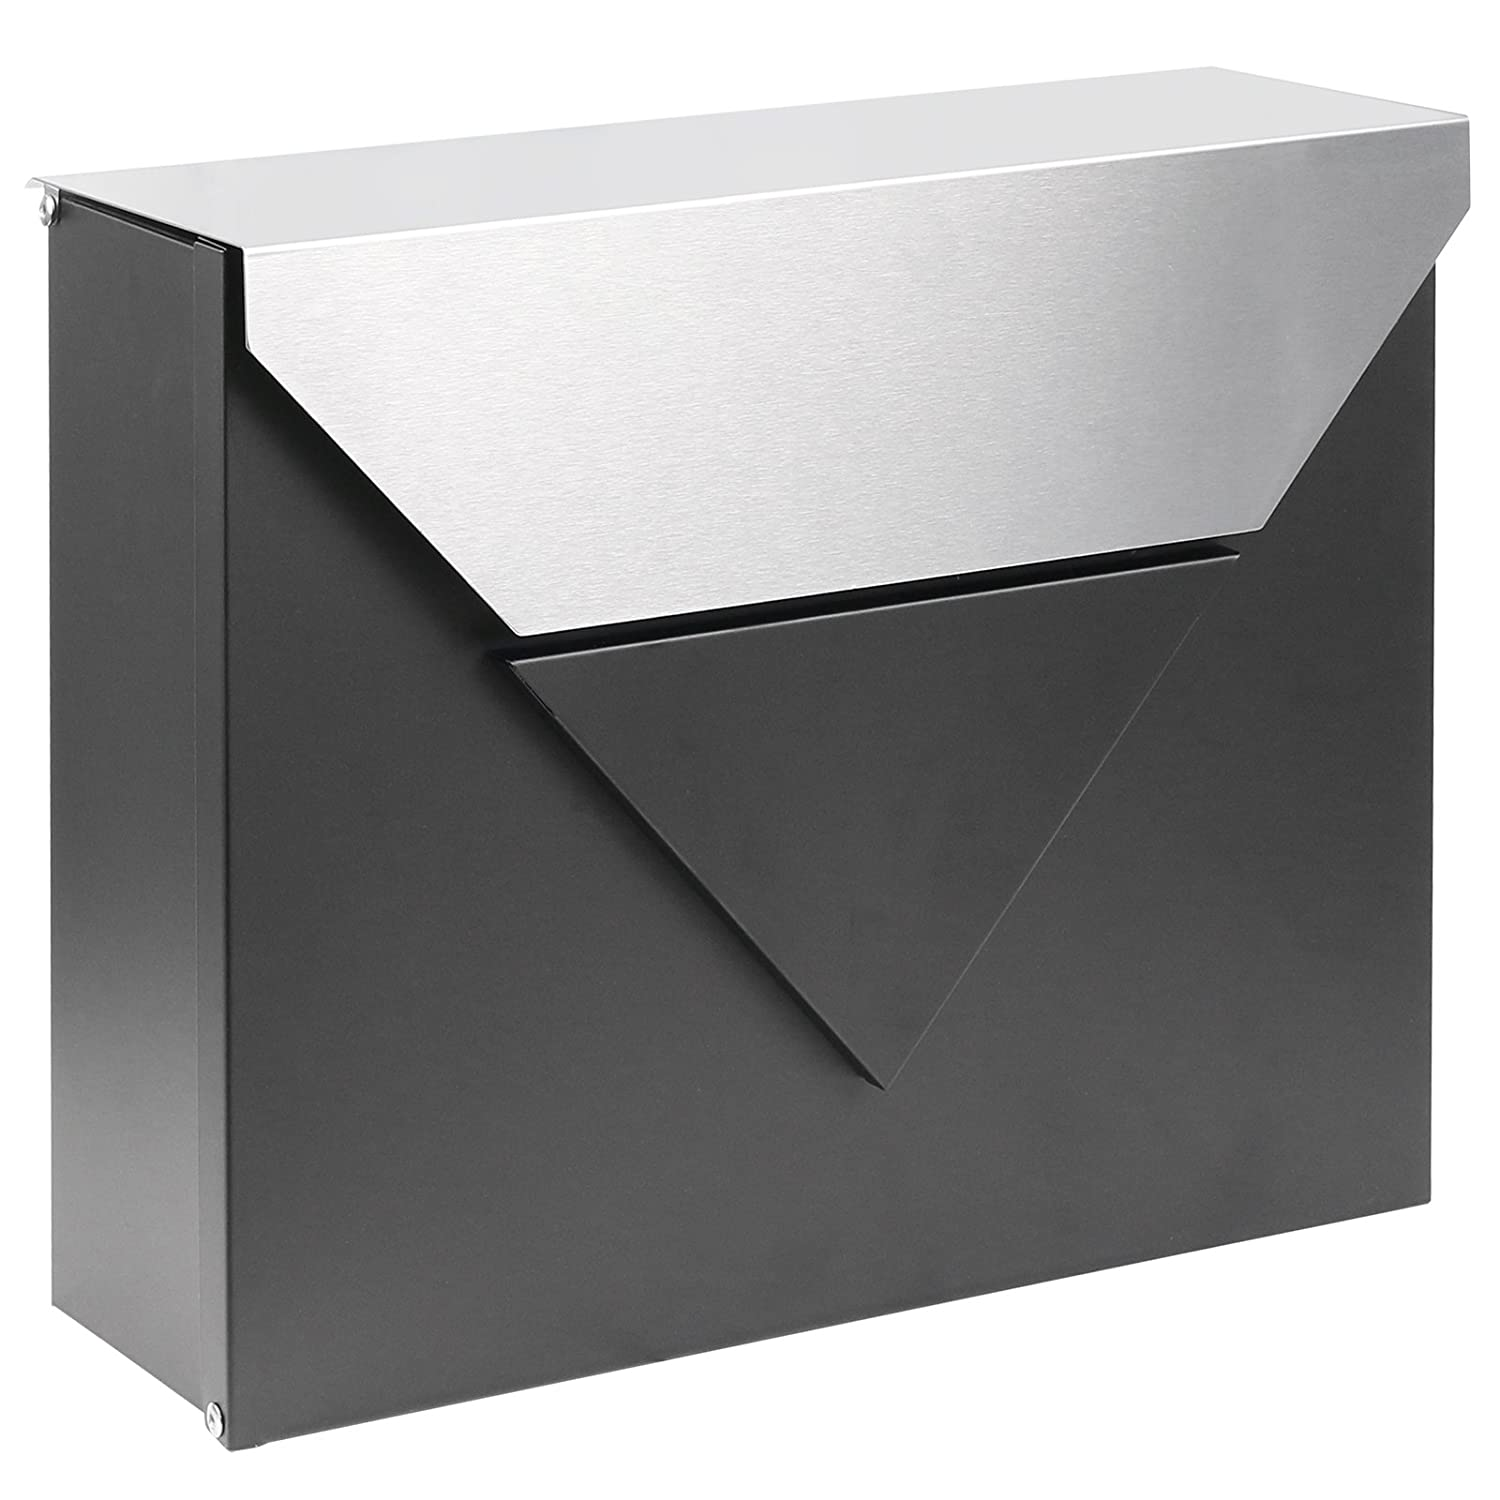 Hartleys Wall Mounted Outdoor Mailbox - Black Body with Brushed Steel Lid